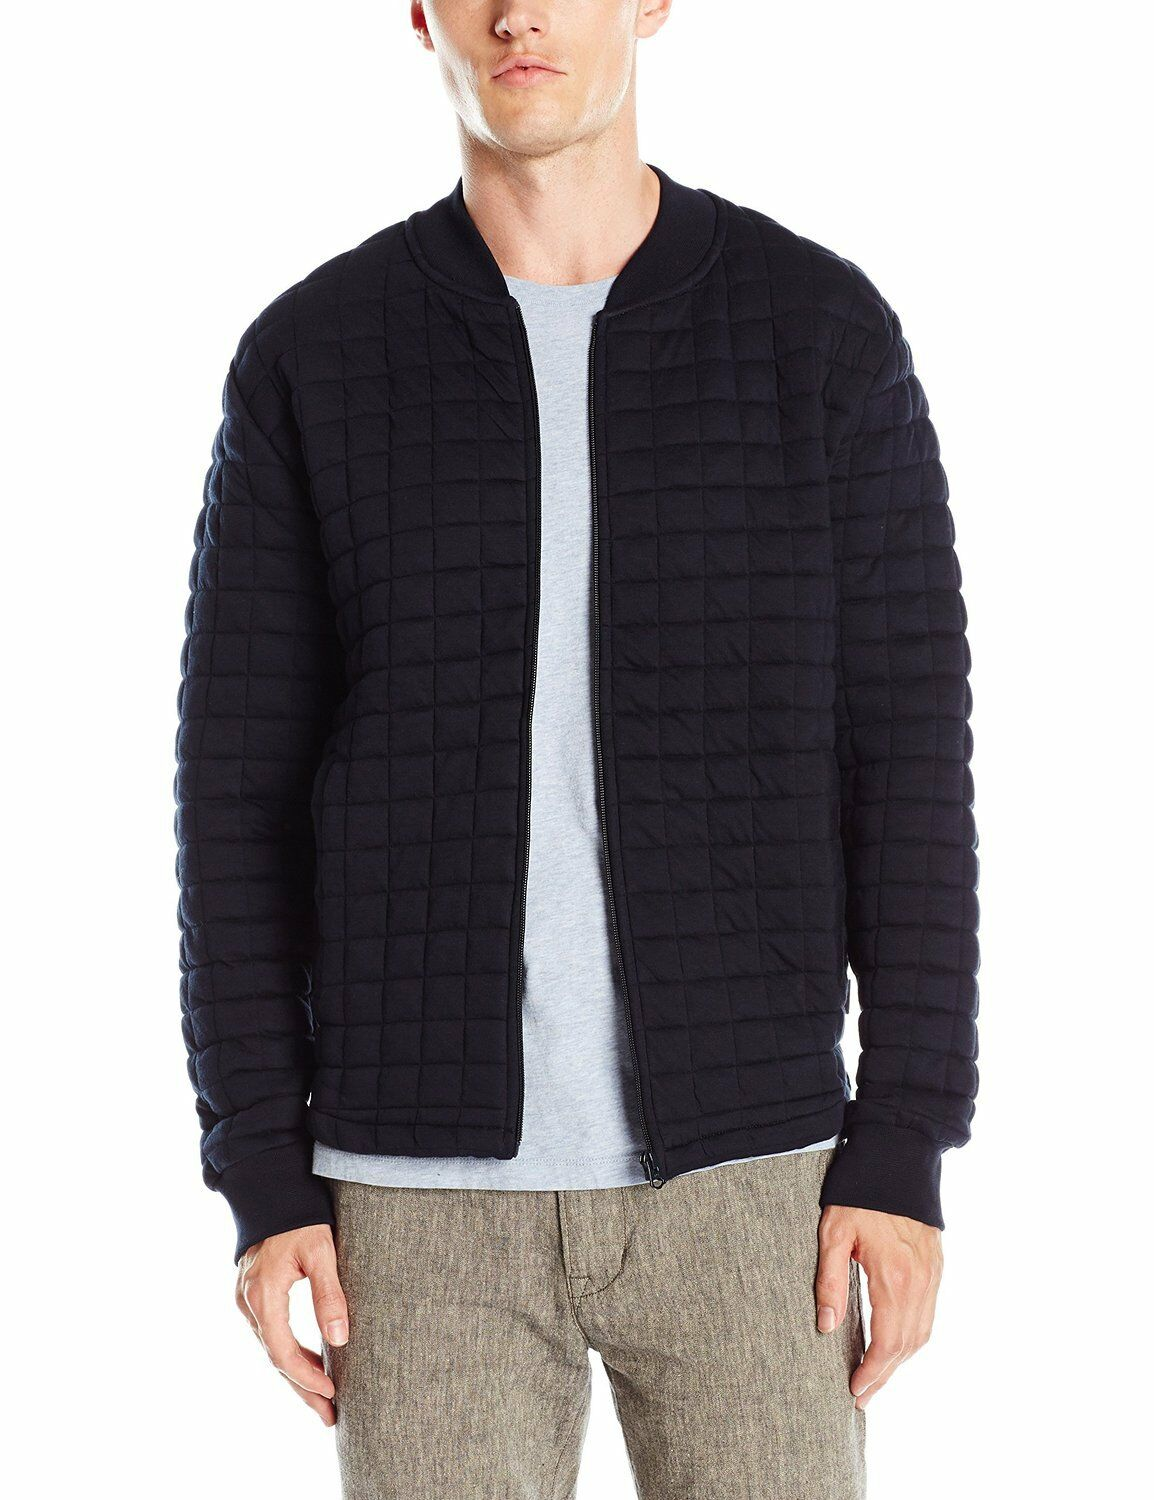 French Connection New  Herren Zip Up Sweatshirt Cardigan Cotton Cardi Top Marine